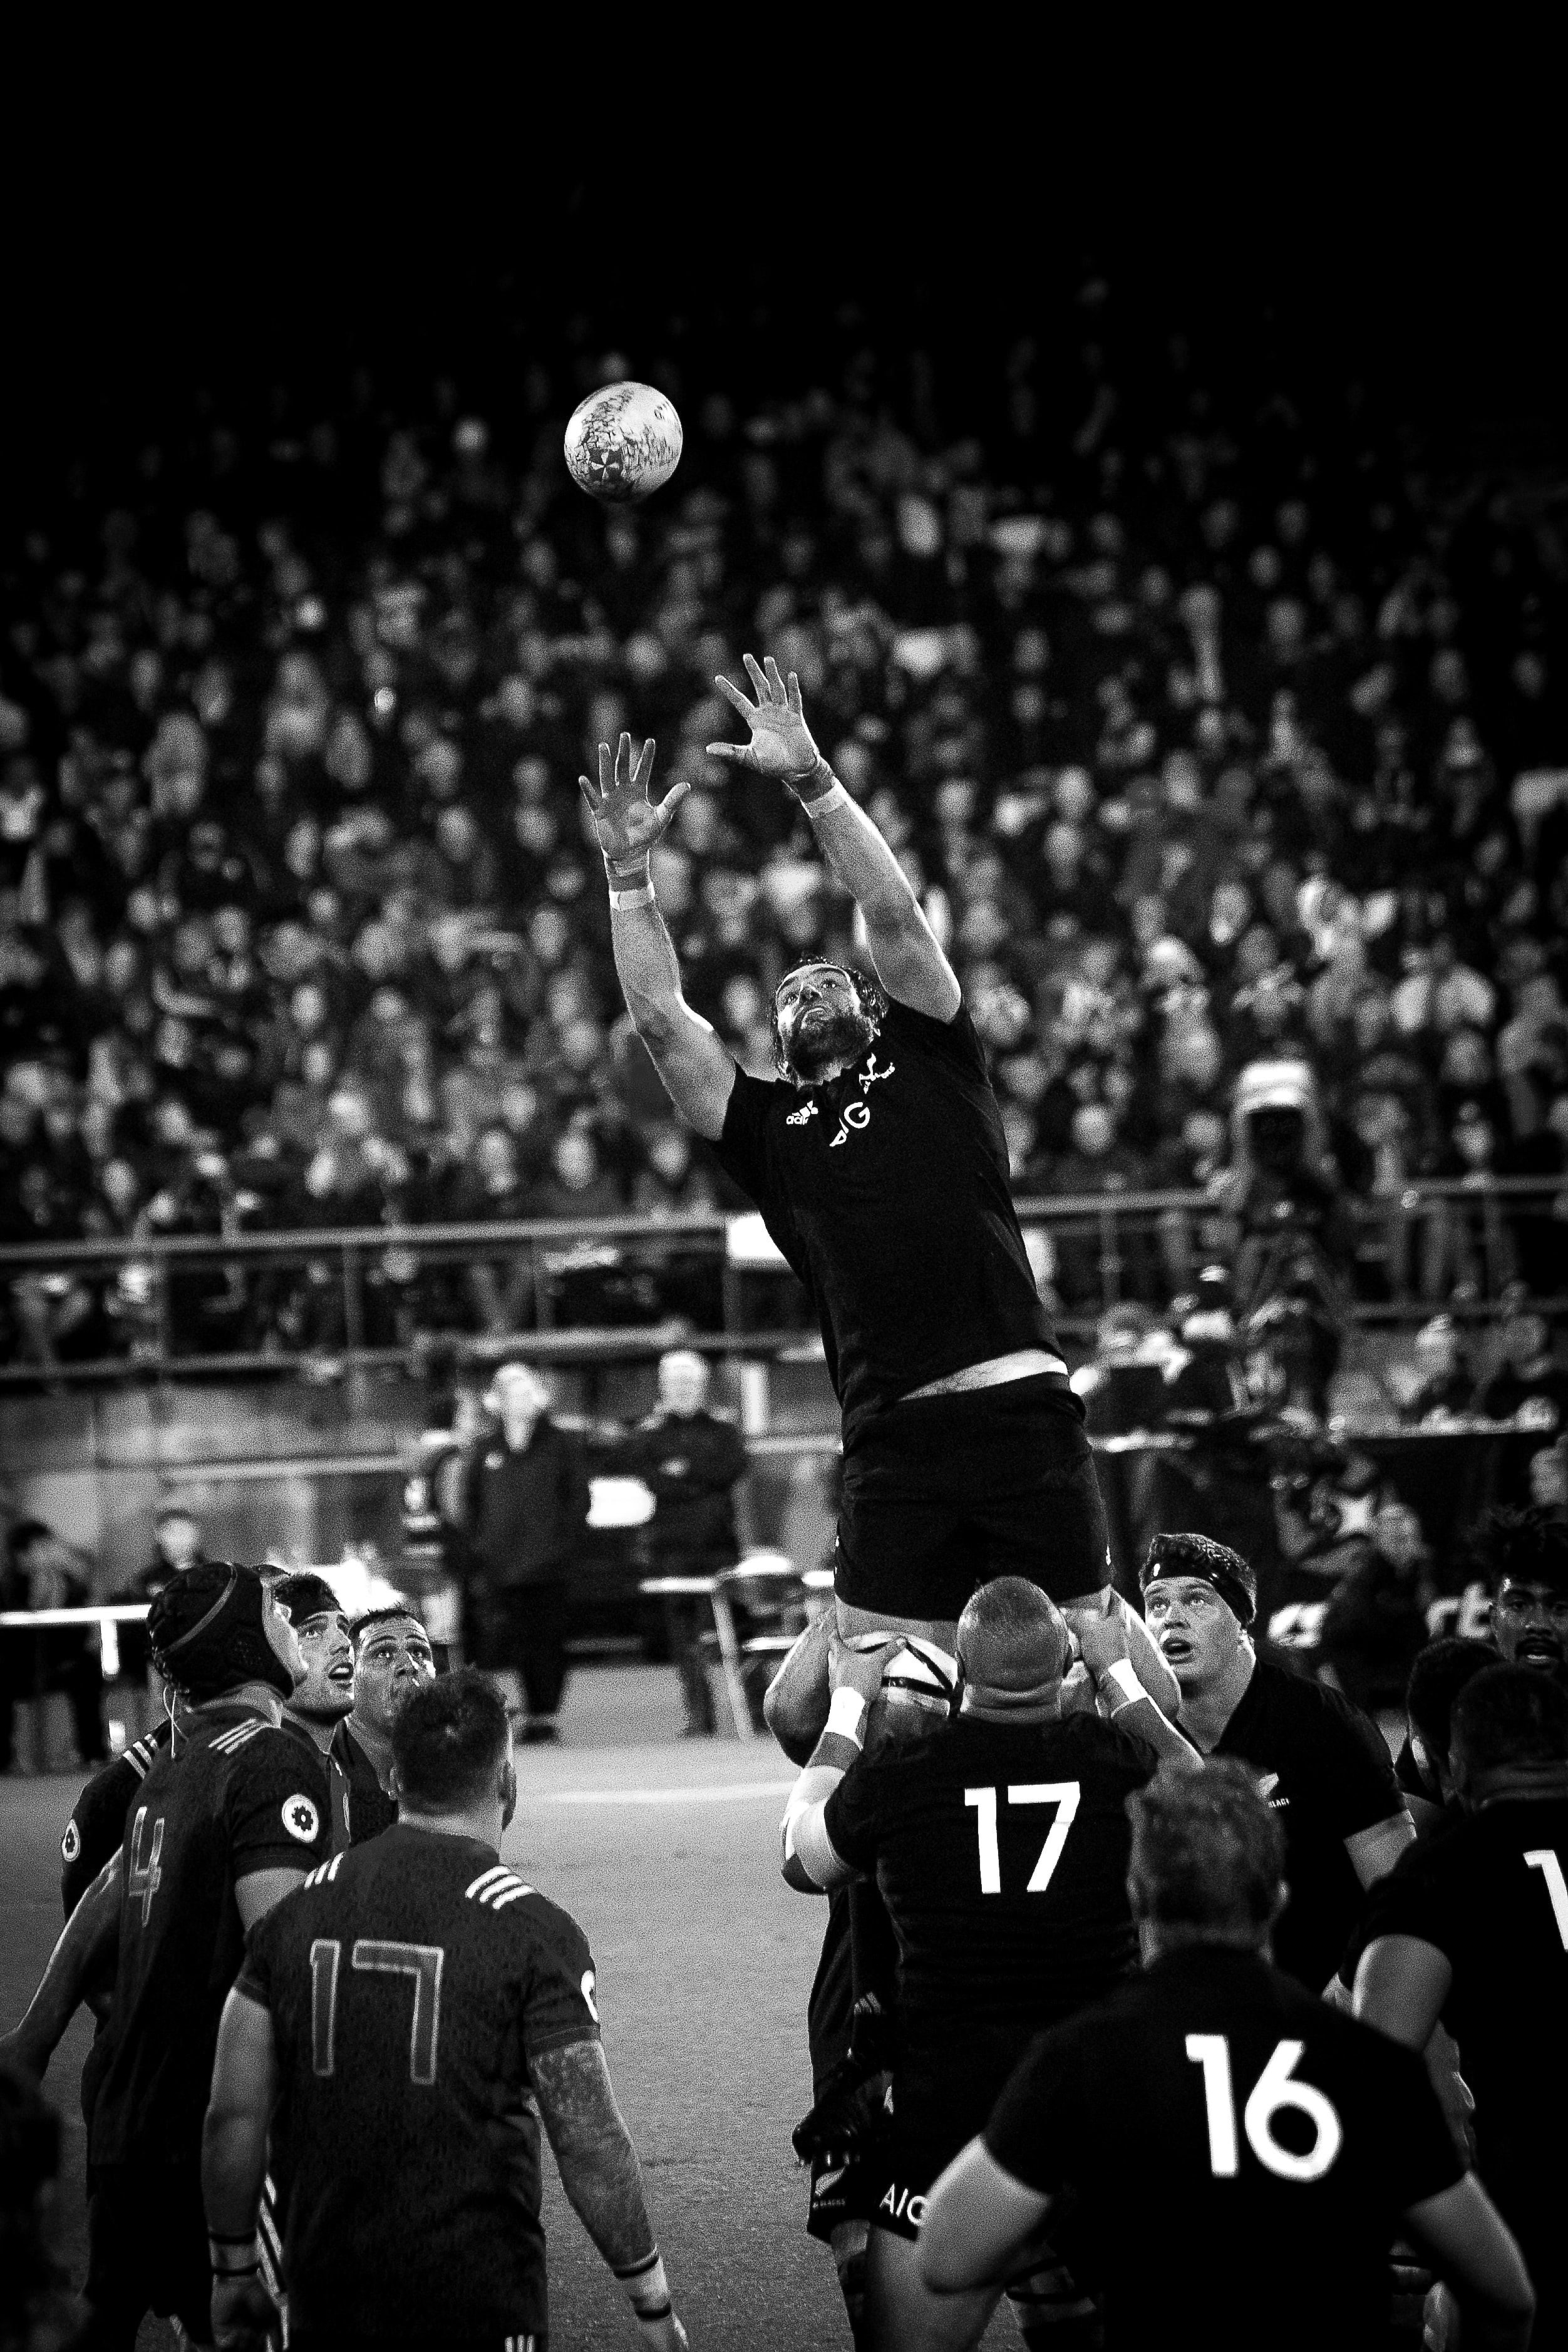 grayscale photo of NFL player catching ball